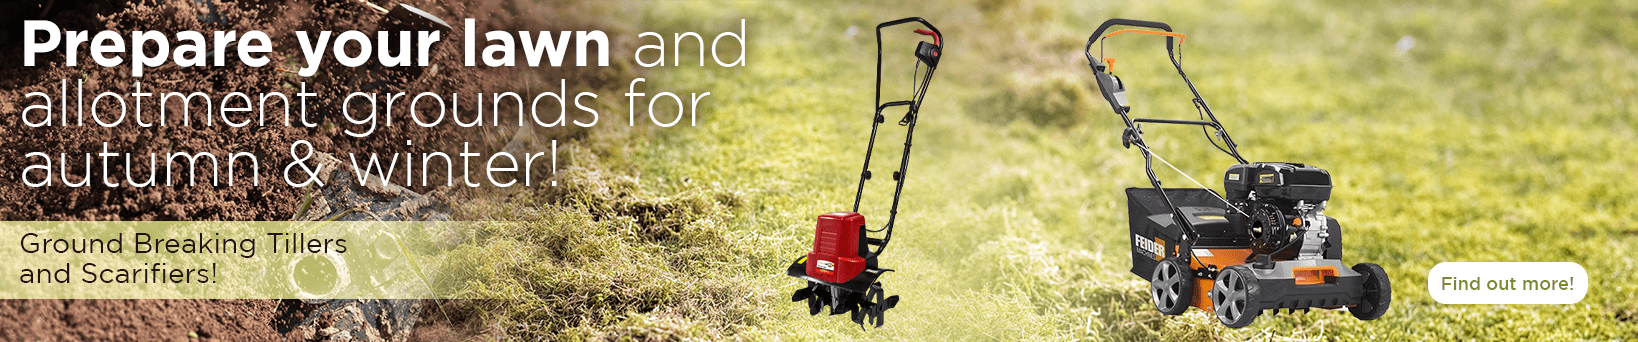 Tillers and scarifiers for this Autumn and Winter